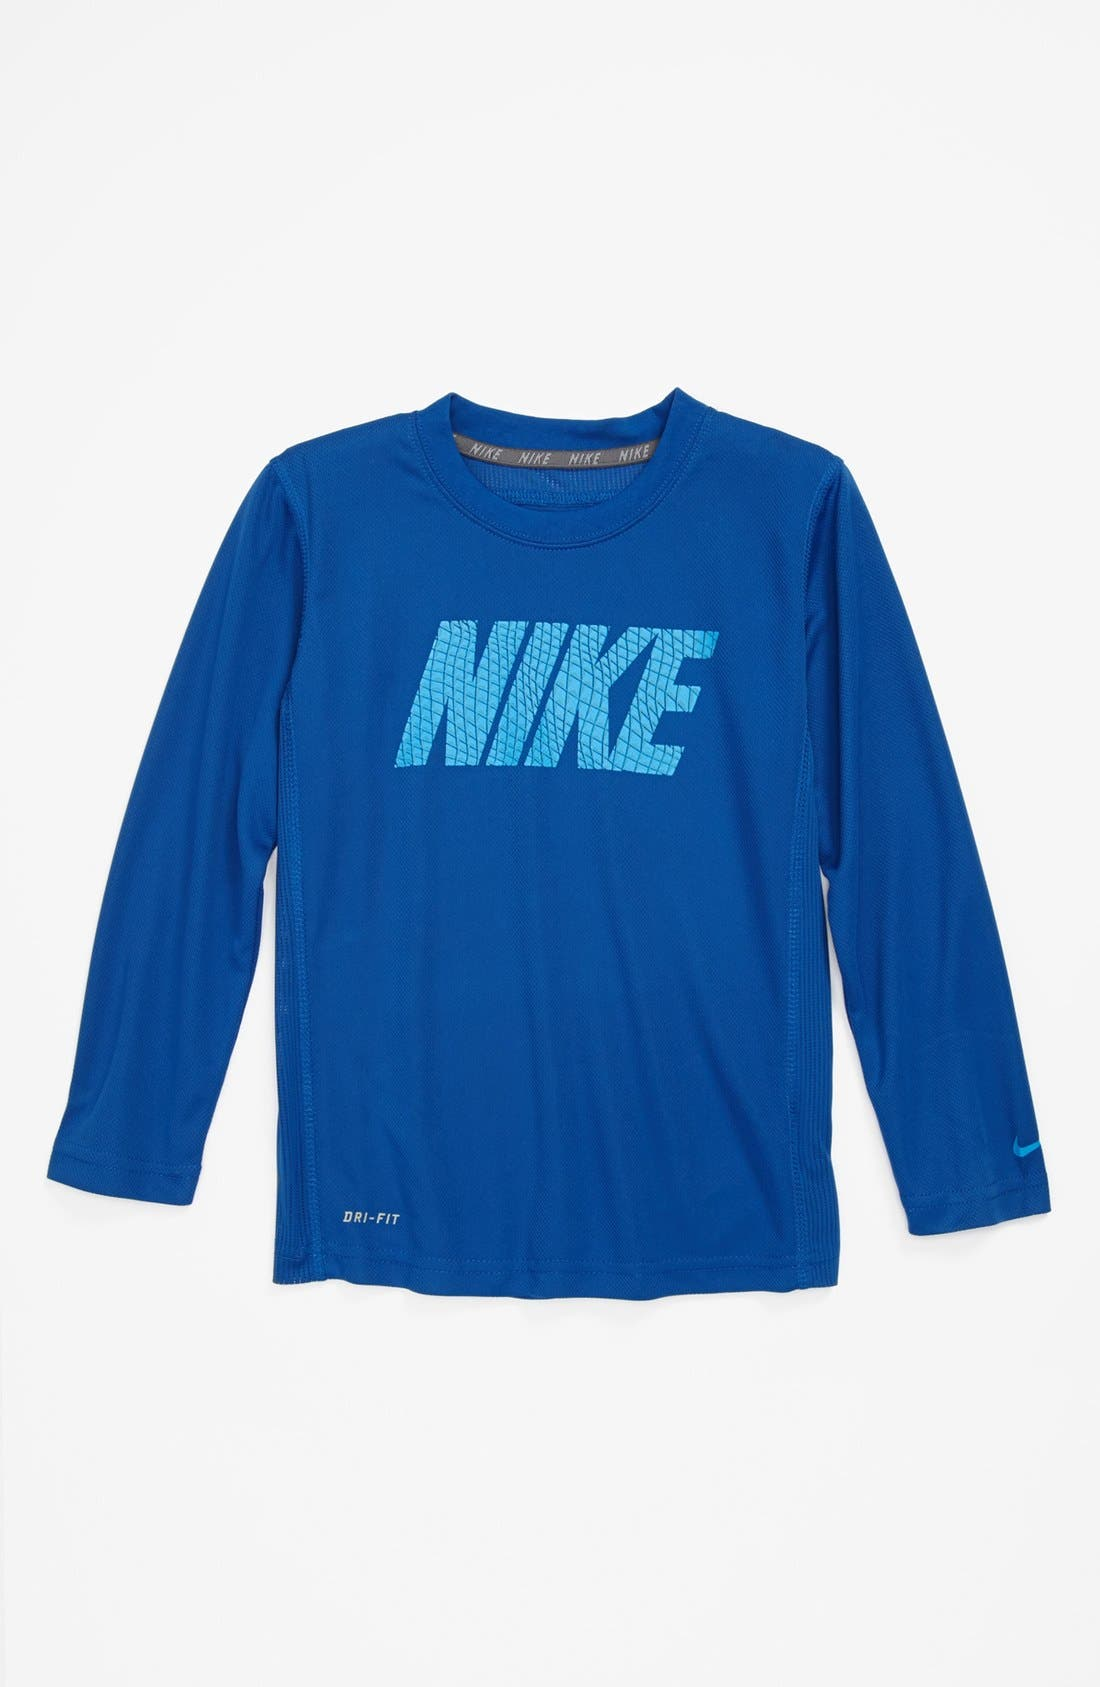 Alternate Image 1 Selected - Nike 'Speed Fly GFX' Dri-FIT Top (Little Boys)